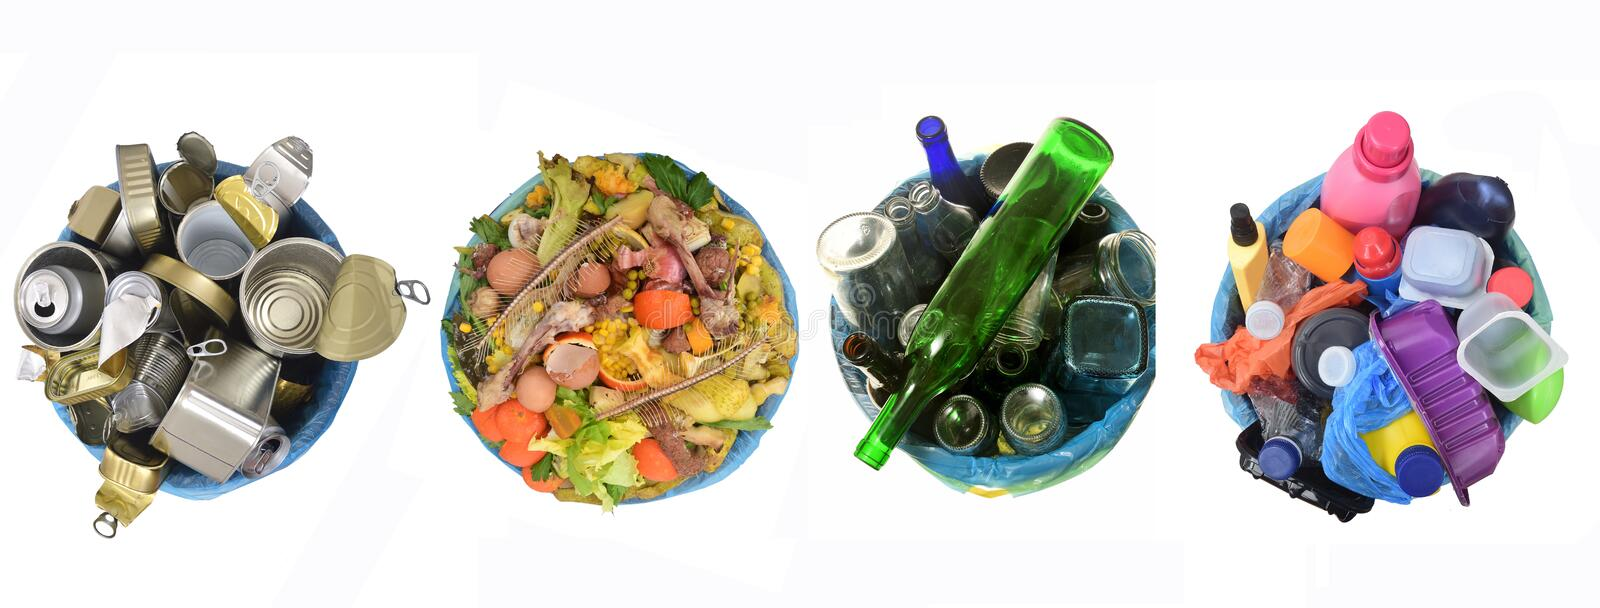 Recycle of cans,compost,glass and plastic royalty free stock image